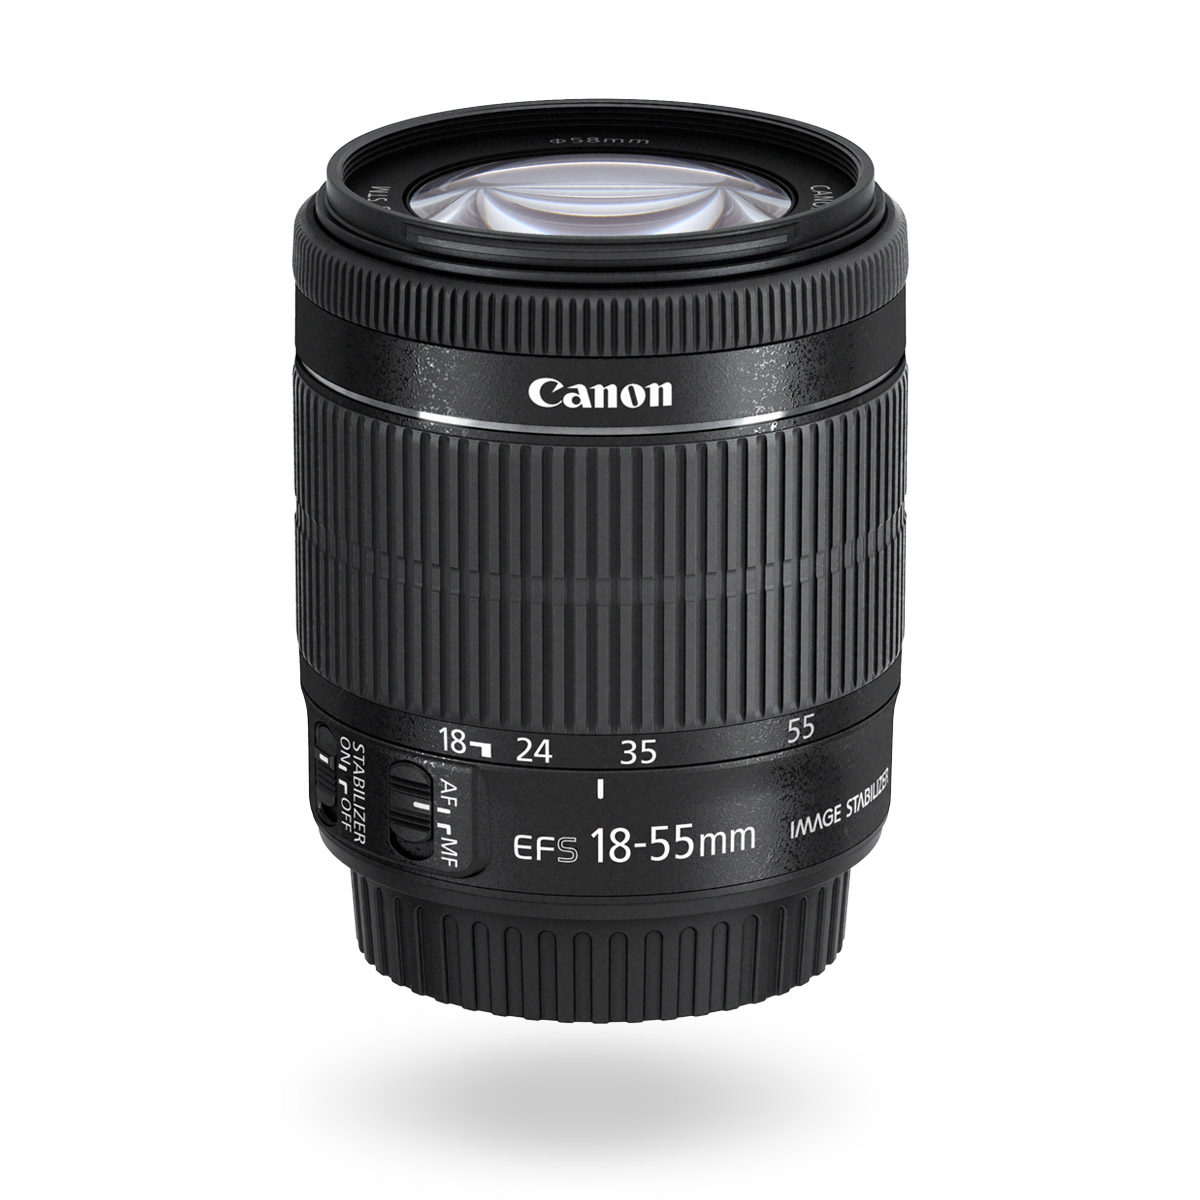 EF-S 18-55mm f/3.5-5.6 IS STM lens